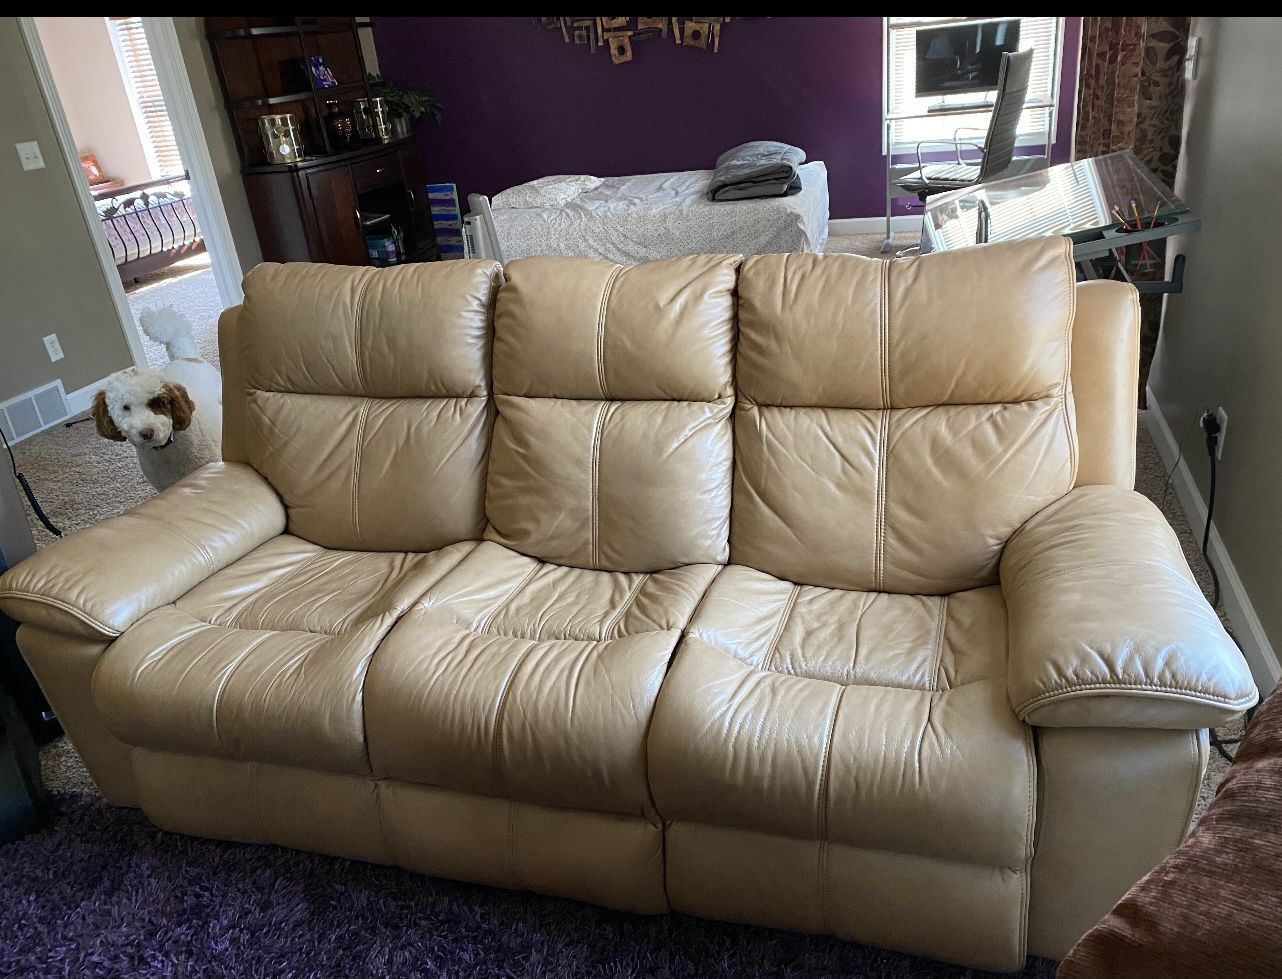 Tan leather sofa set is for sale Ana- they are power recliners. Price 1600